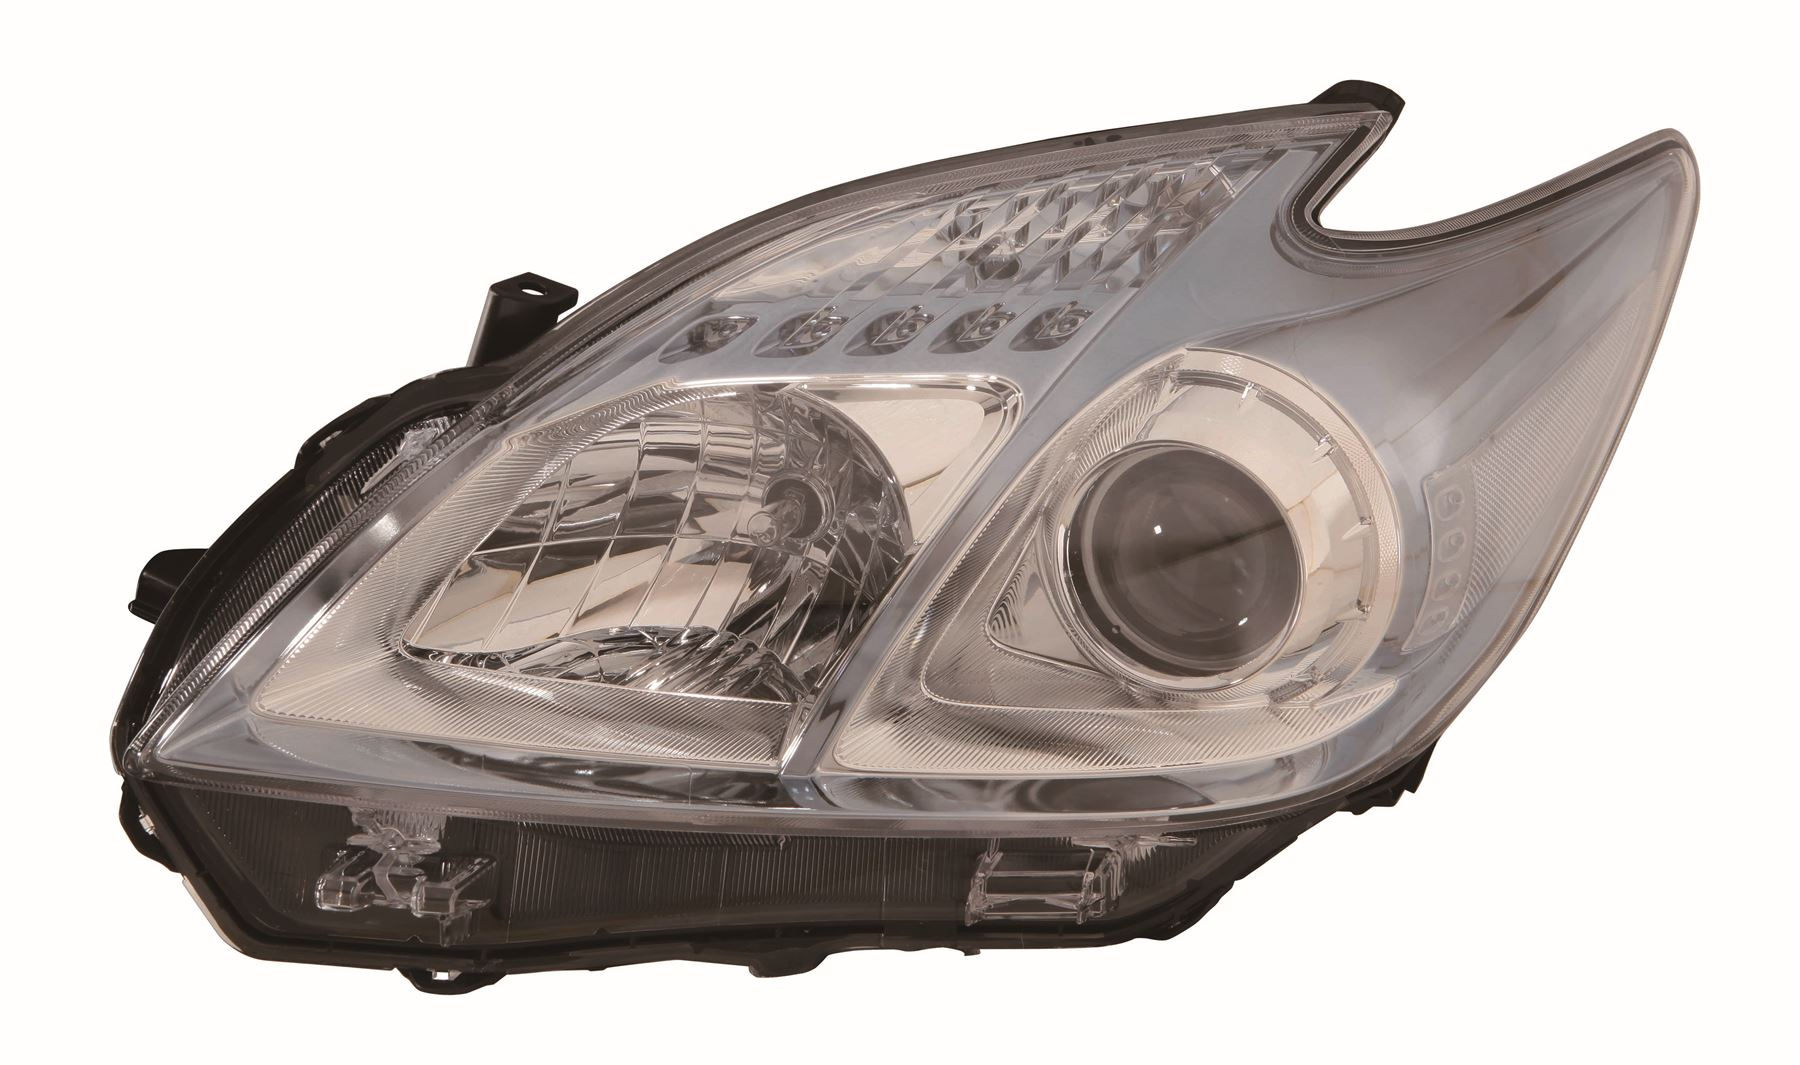 Toyota Prius ZVW30 Hatch 4/12-6/16 Light Blue Tint Headlight Passenger Side N/S